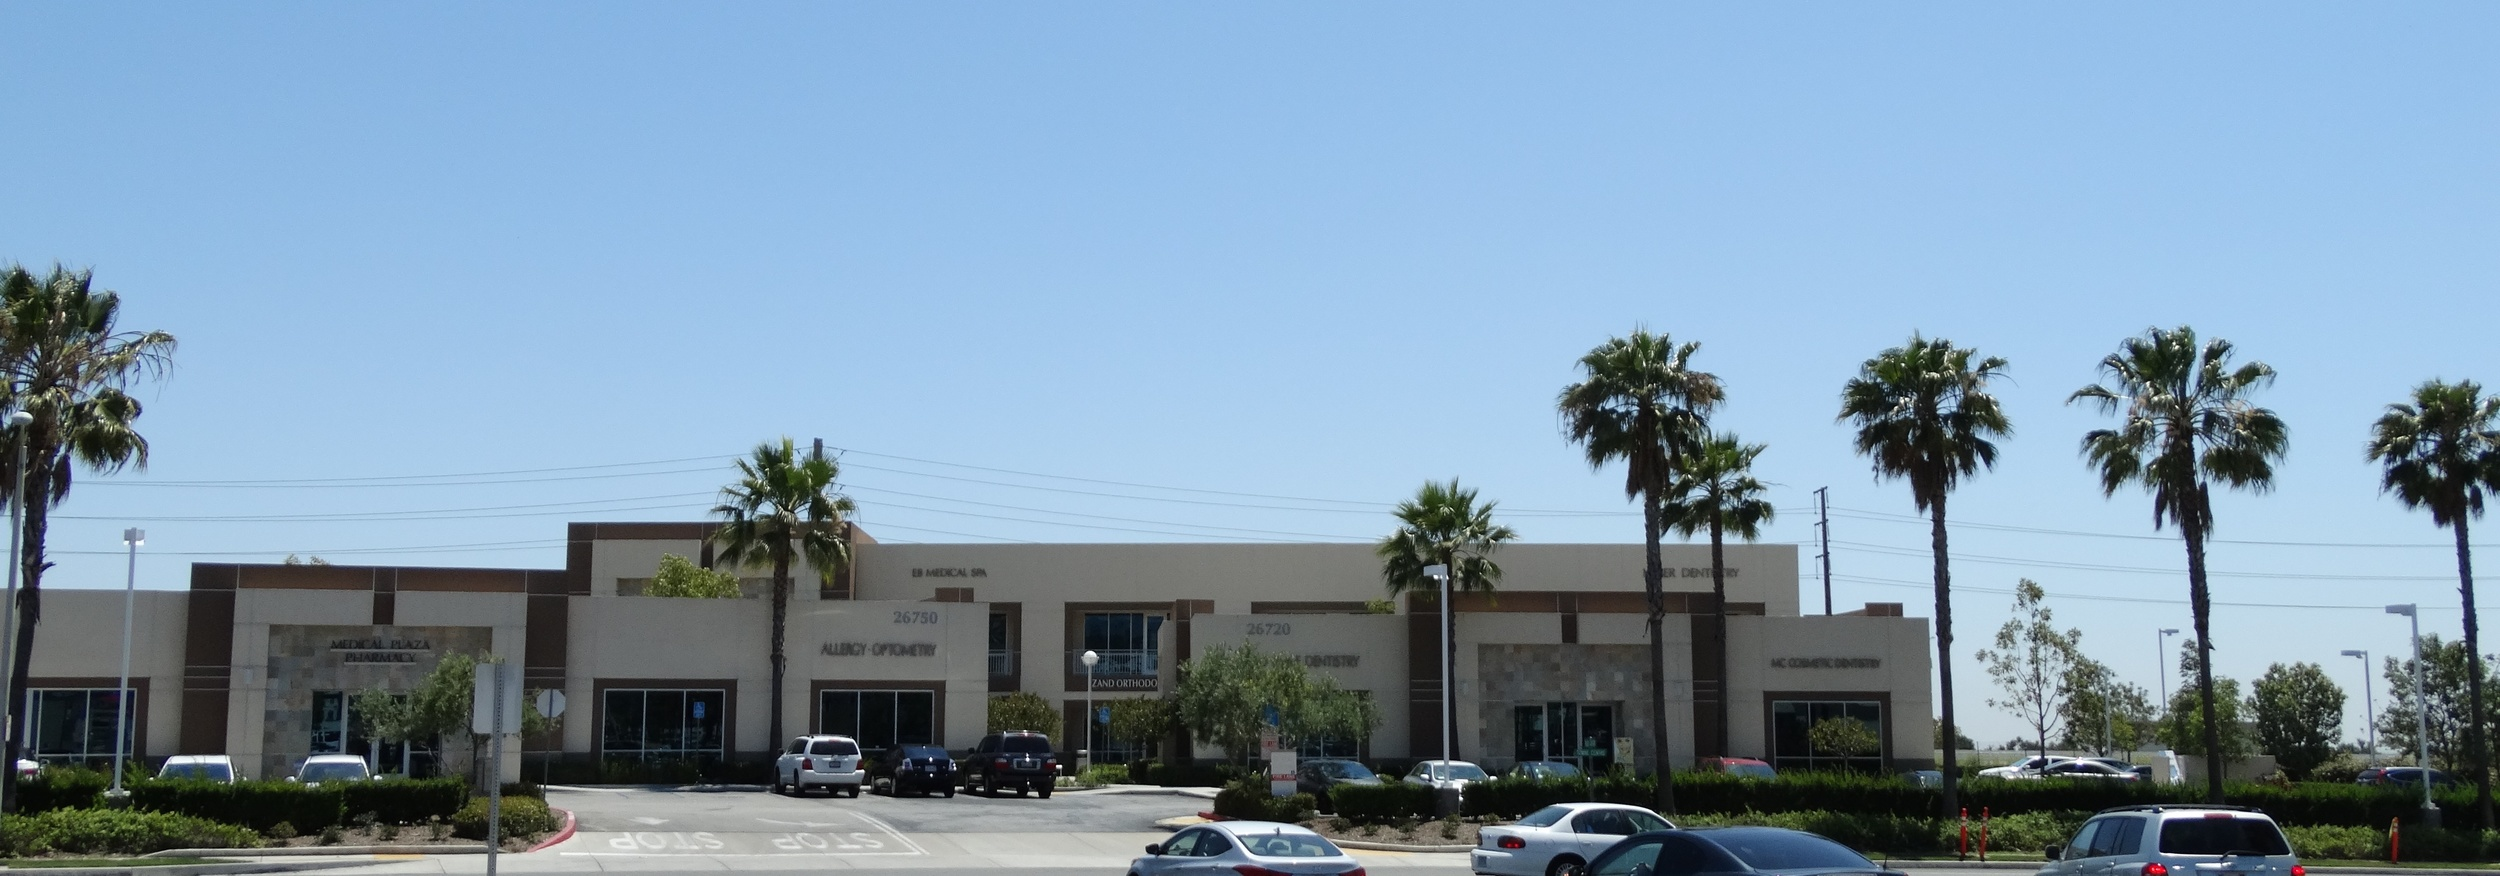 The Foothill Ranch Medical Plaza is locatedat the corner of Auto Center Drive and Towne CenterDrive in Foothill Ranch.